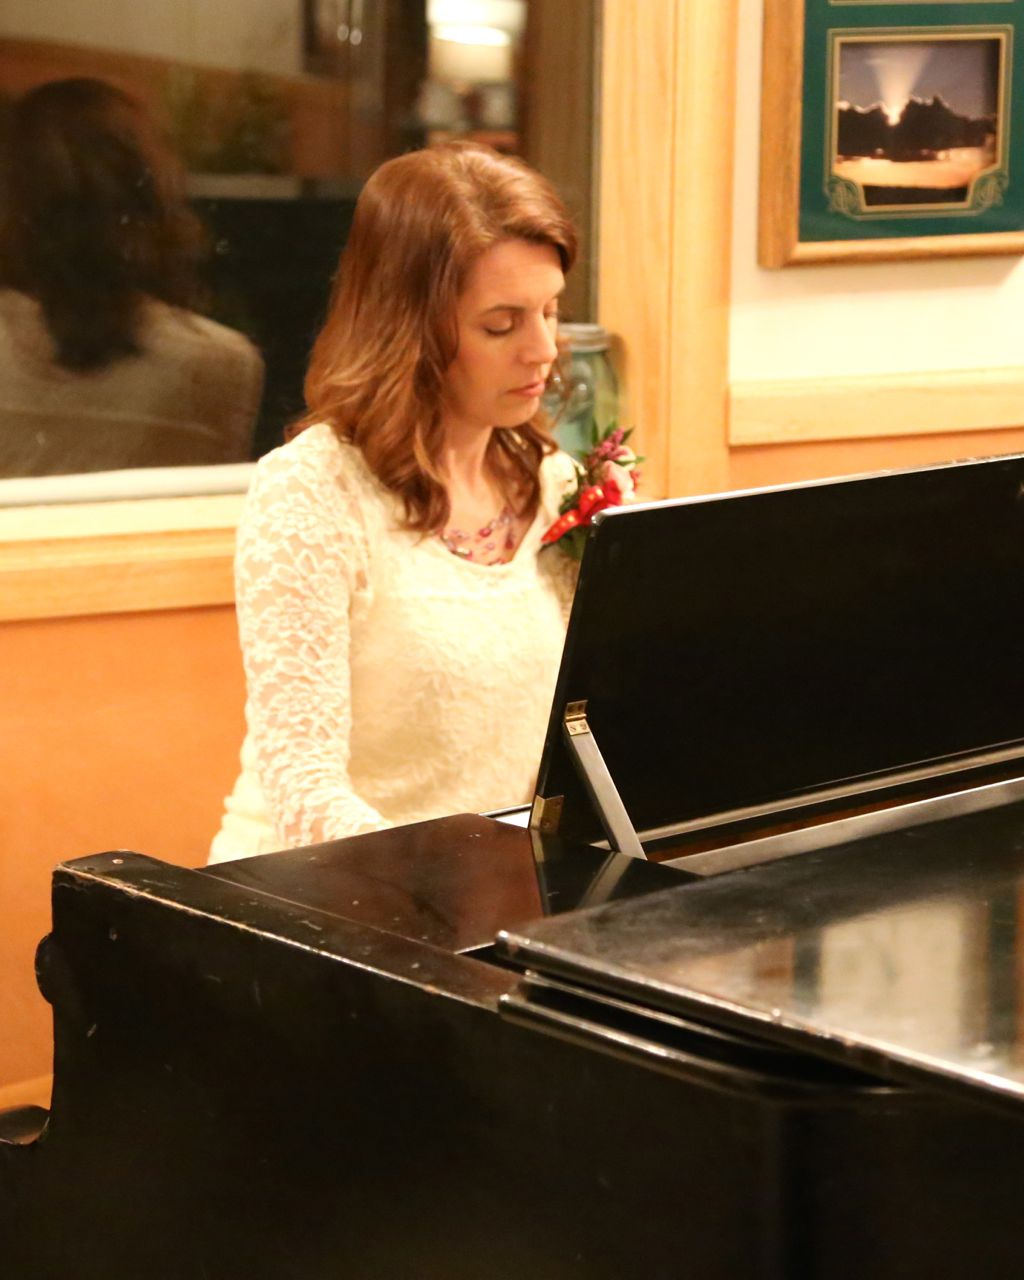 - And Robin Reinholdprovided beautiful dinner music. The Valentine Banquet at RBR was certainly a delight.